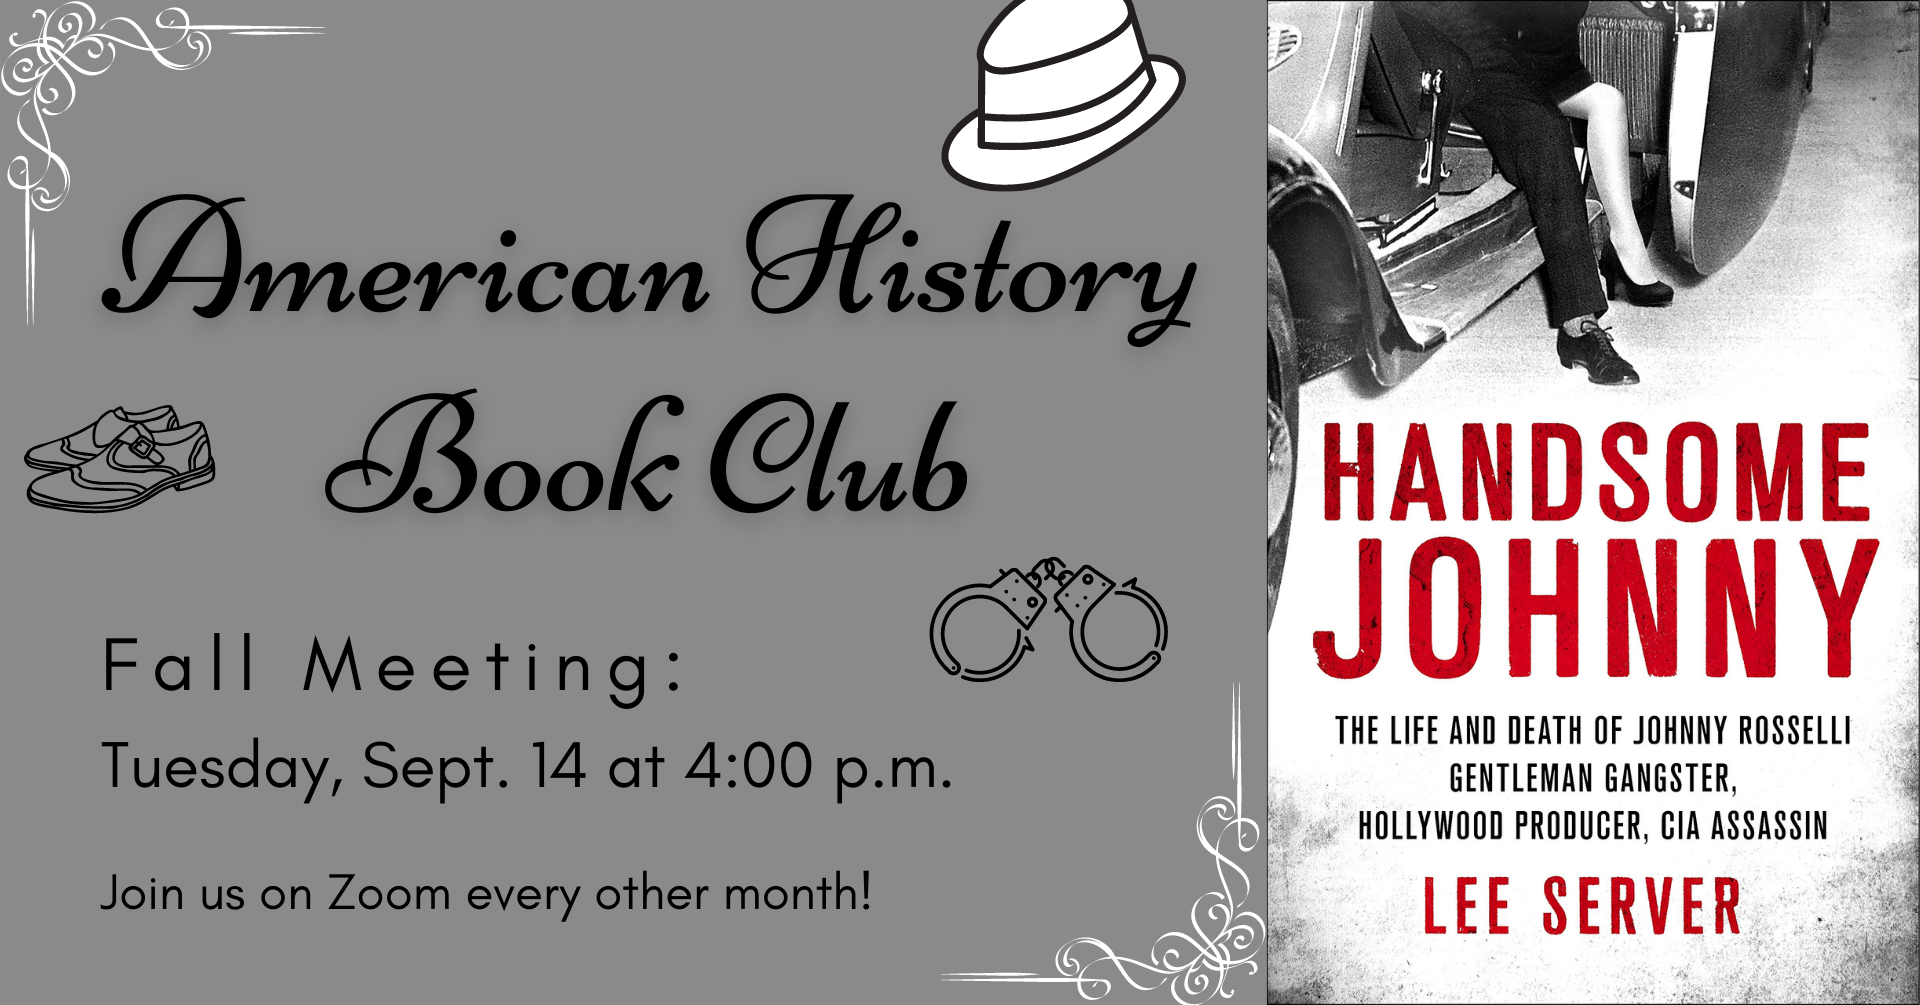 """Text that says """"American History Book Club"""" and a cover of a book titled """"Handsome Johnny: Gentleman Gangster."""""""